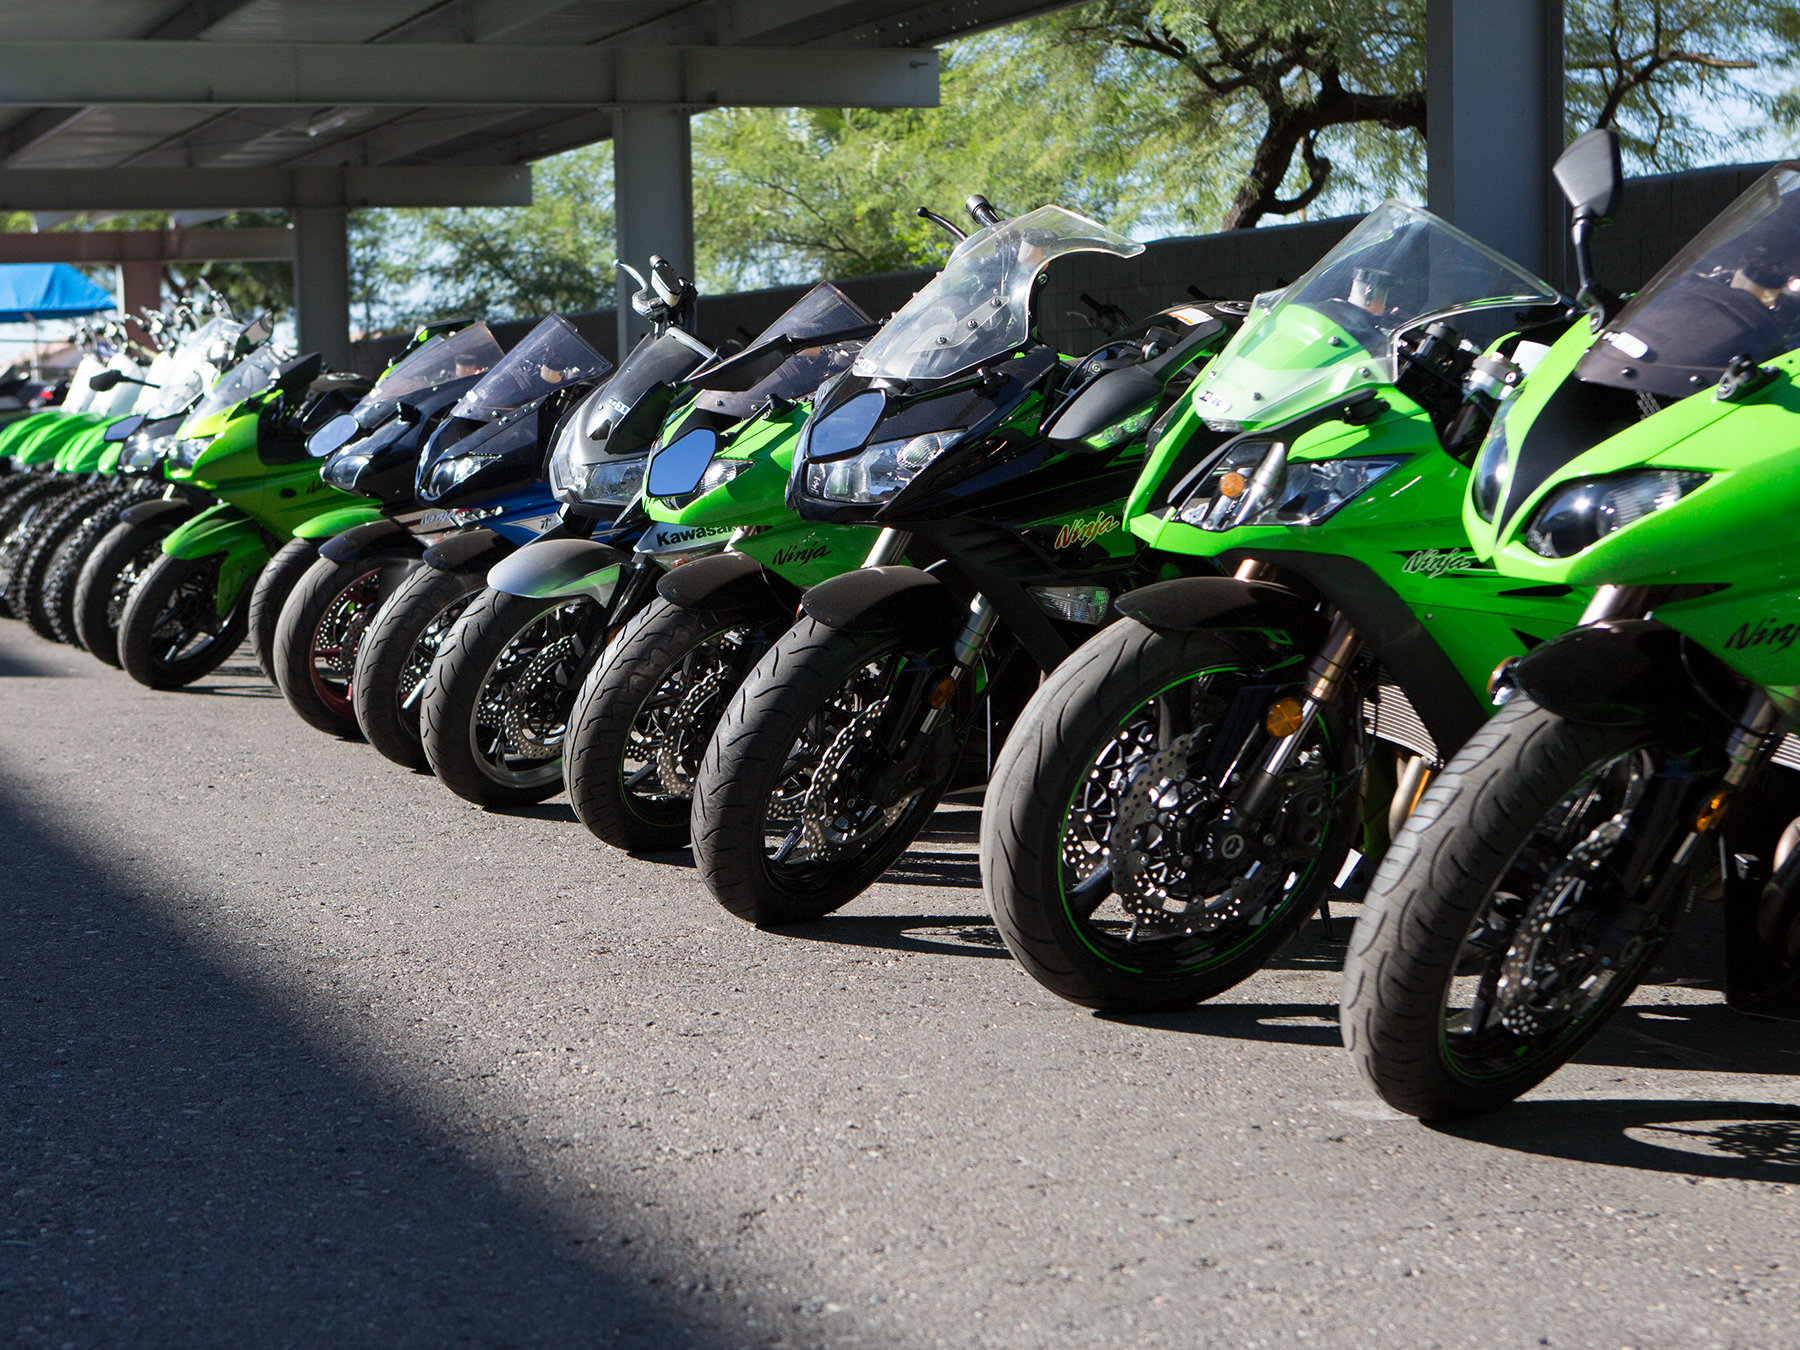 Green Kawasaki Motorcycles outside